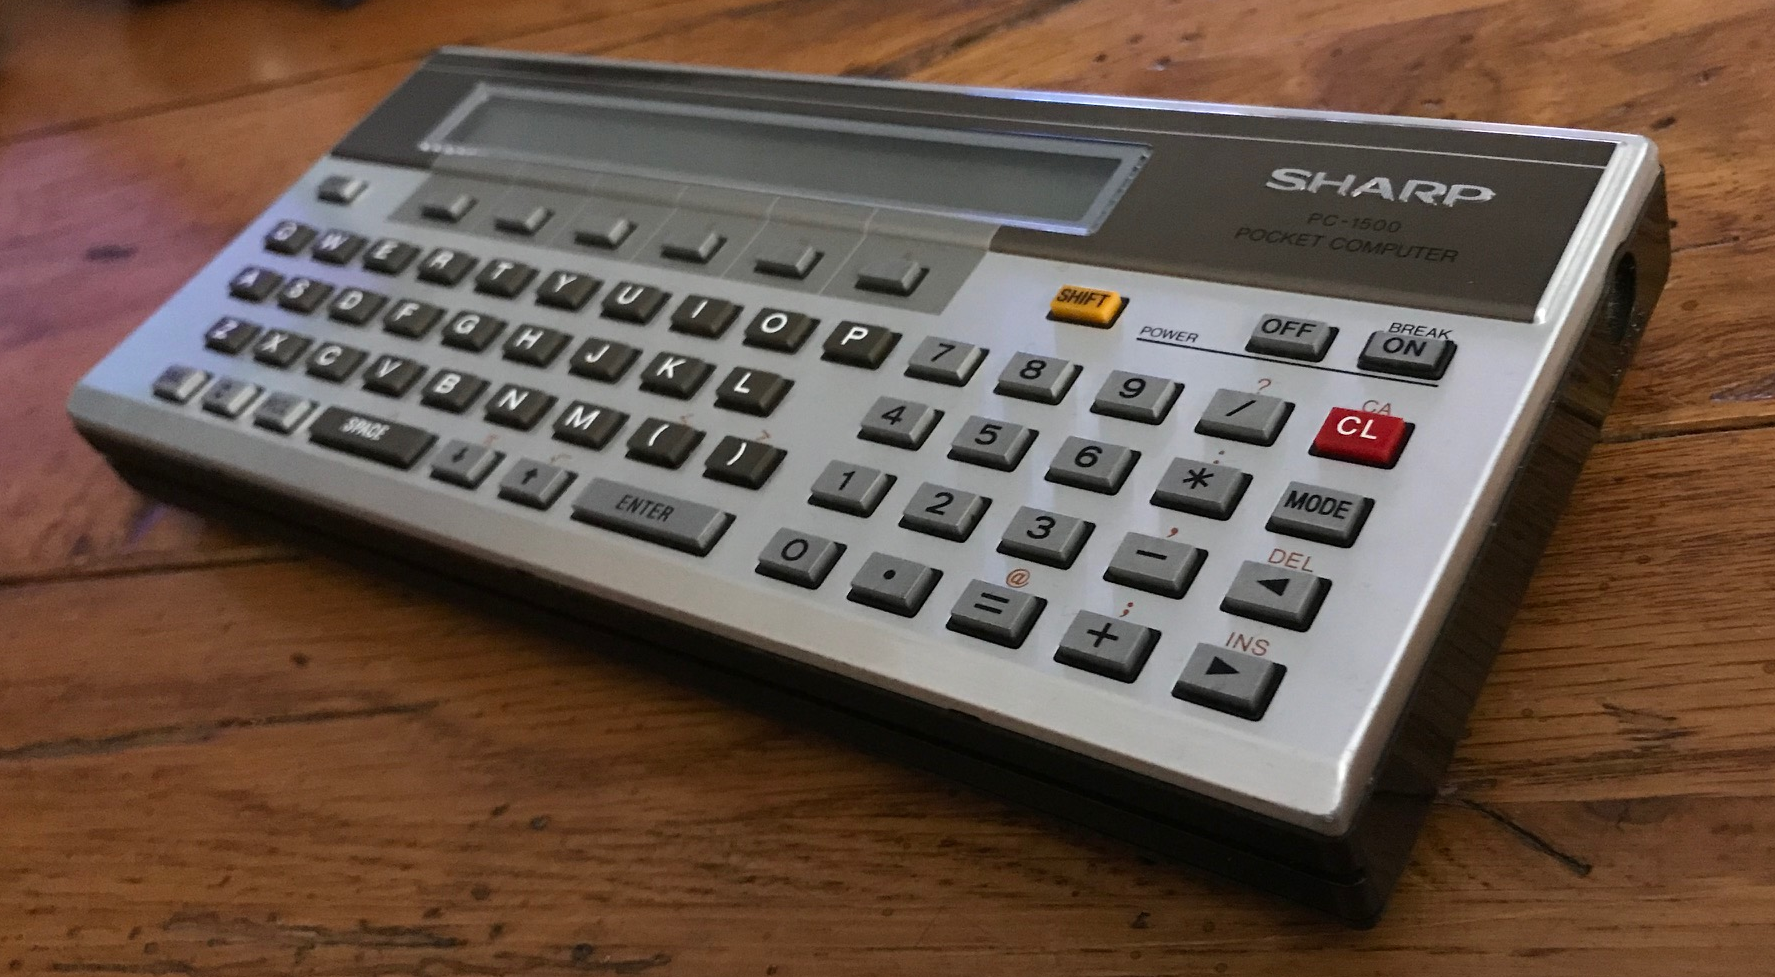 Featured image: Sharp PC-1500